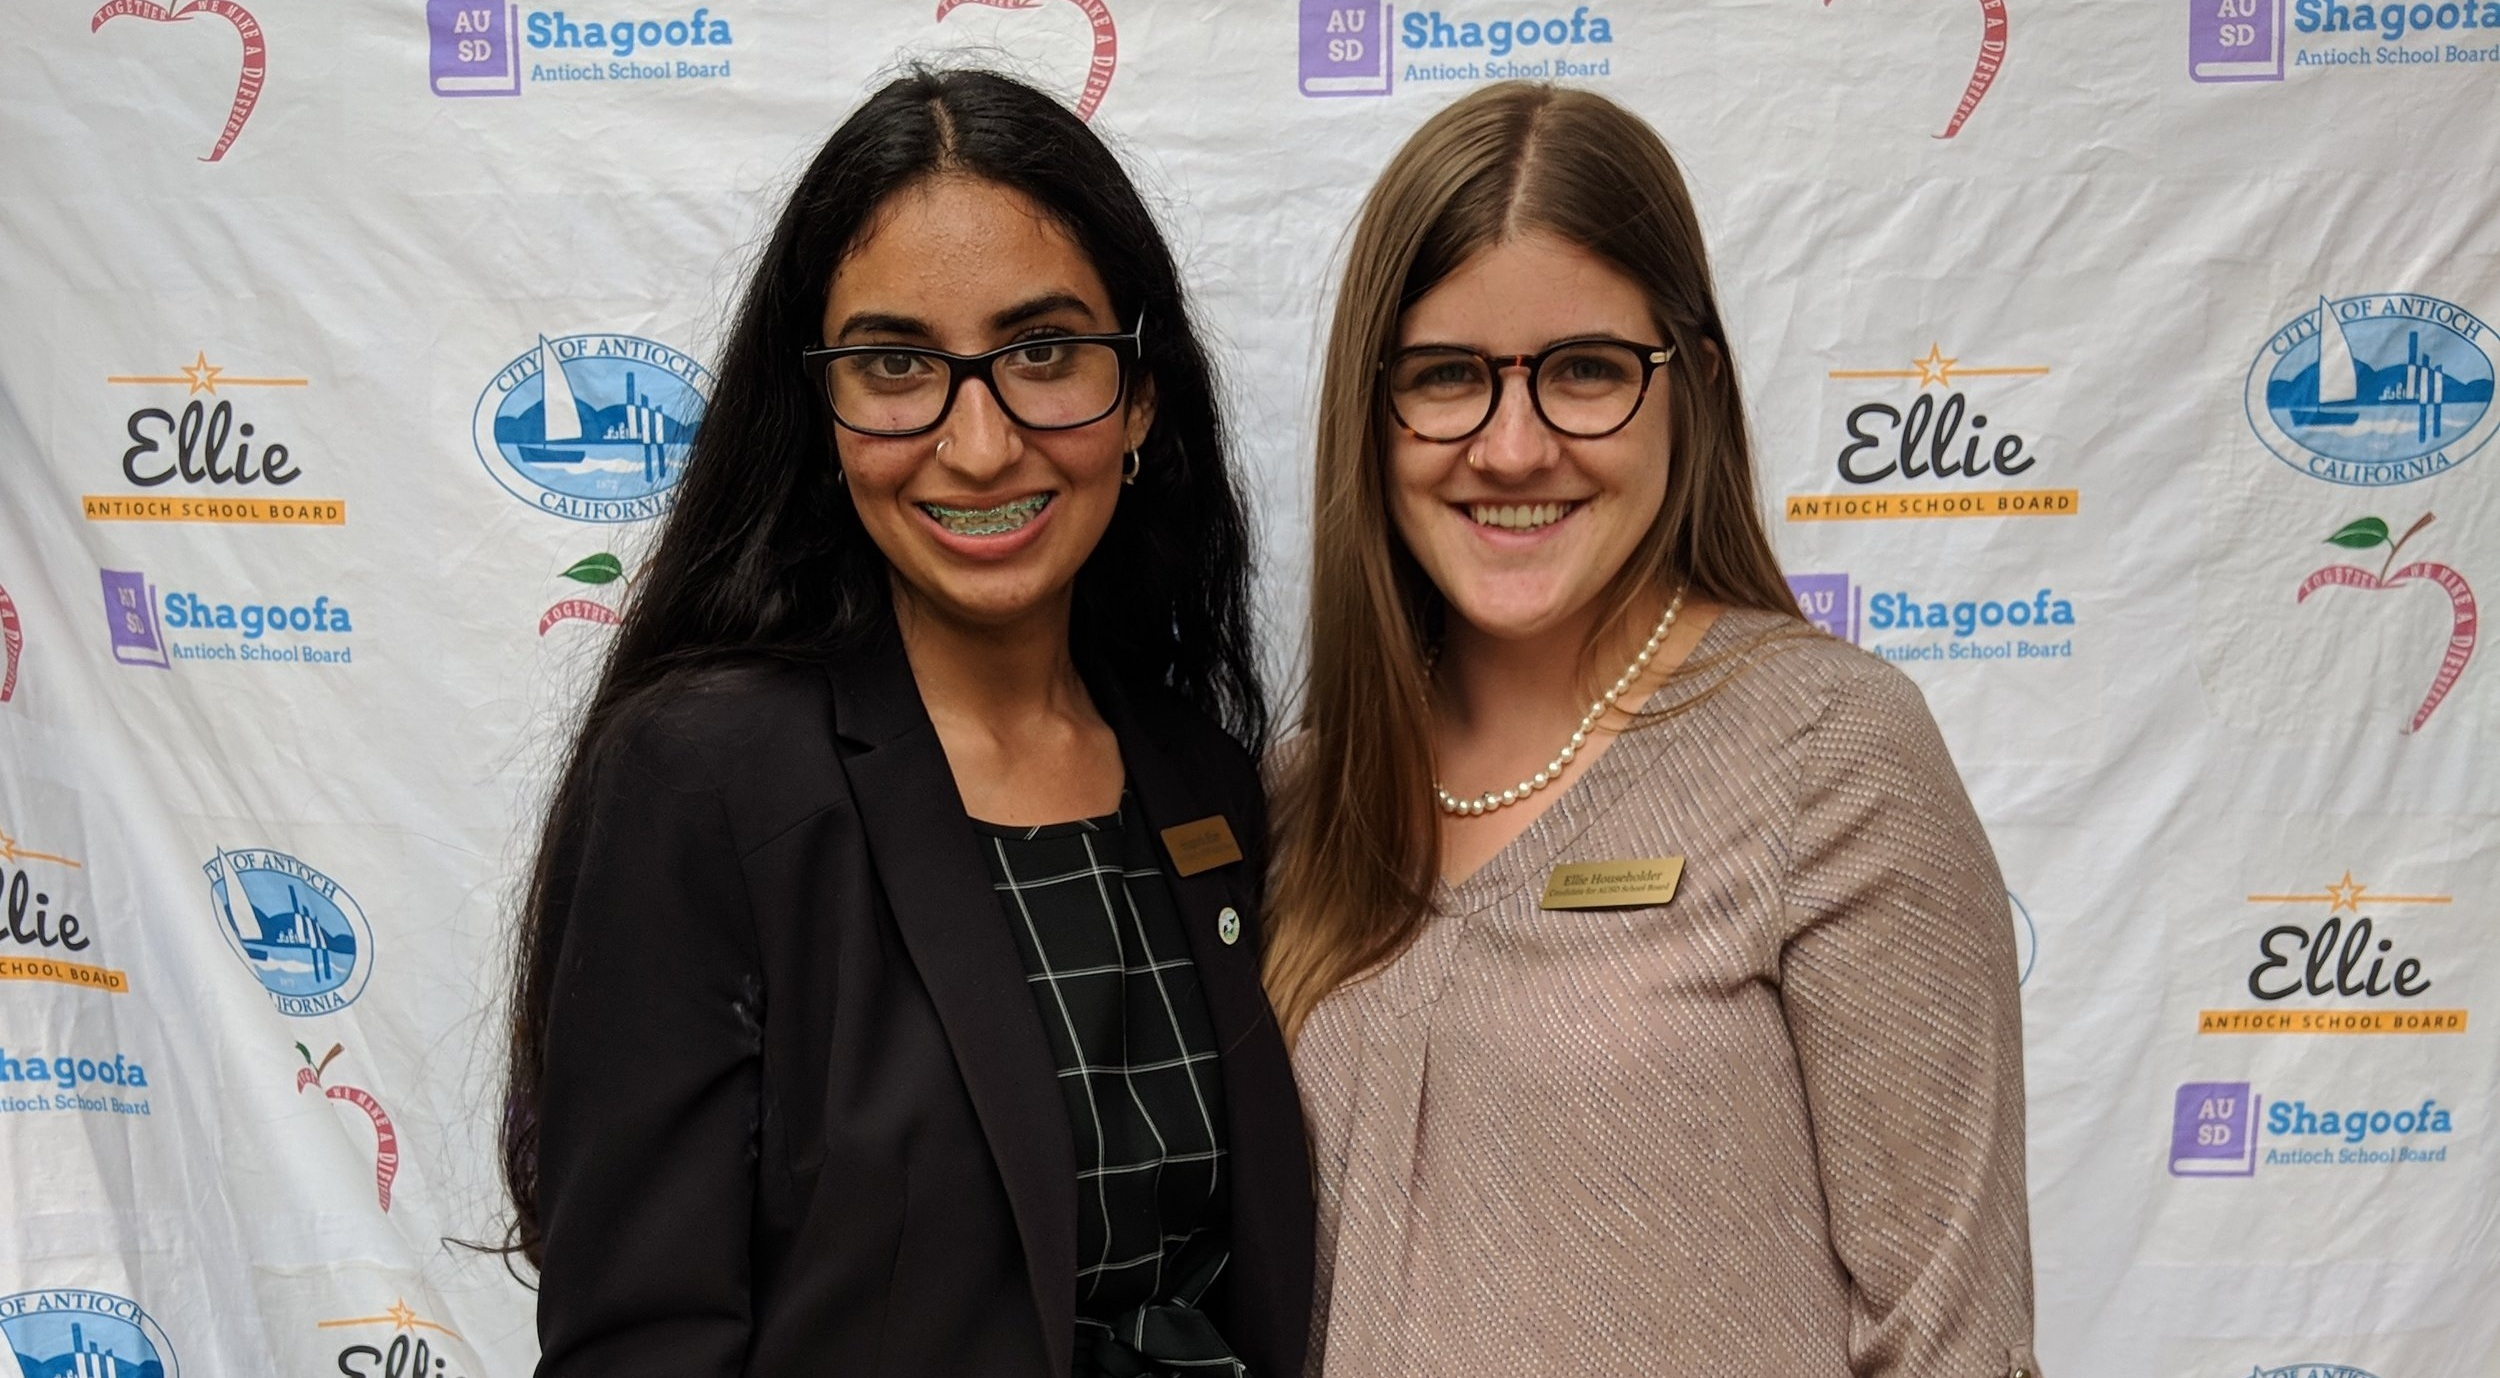 Ellie & Shagoofa for Antioch Unified School Board - Two young women have teamed to run for Antioch Unified School District's school board. Ellie Householder and Shagoofa Khan are both products of this district and are seeking to make schools even stronger for the students who follow them.